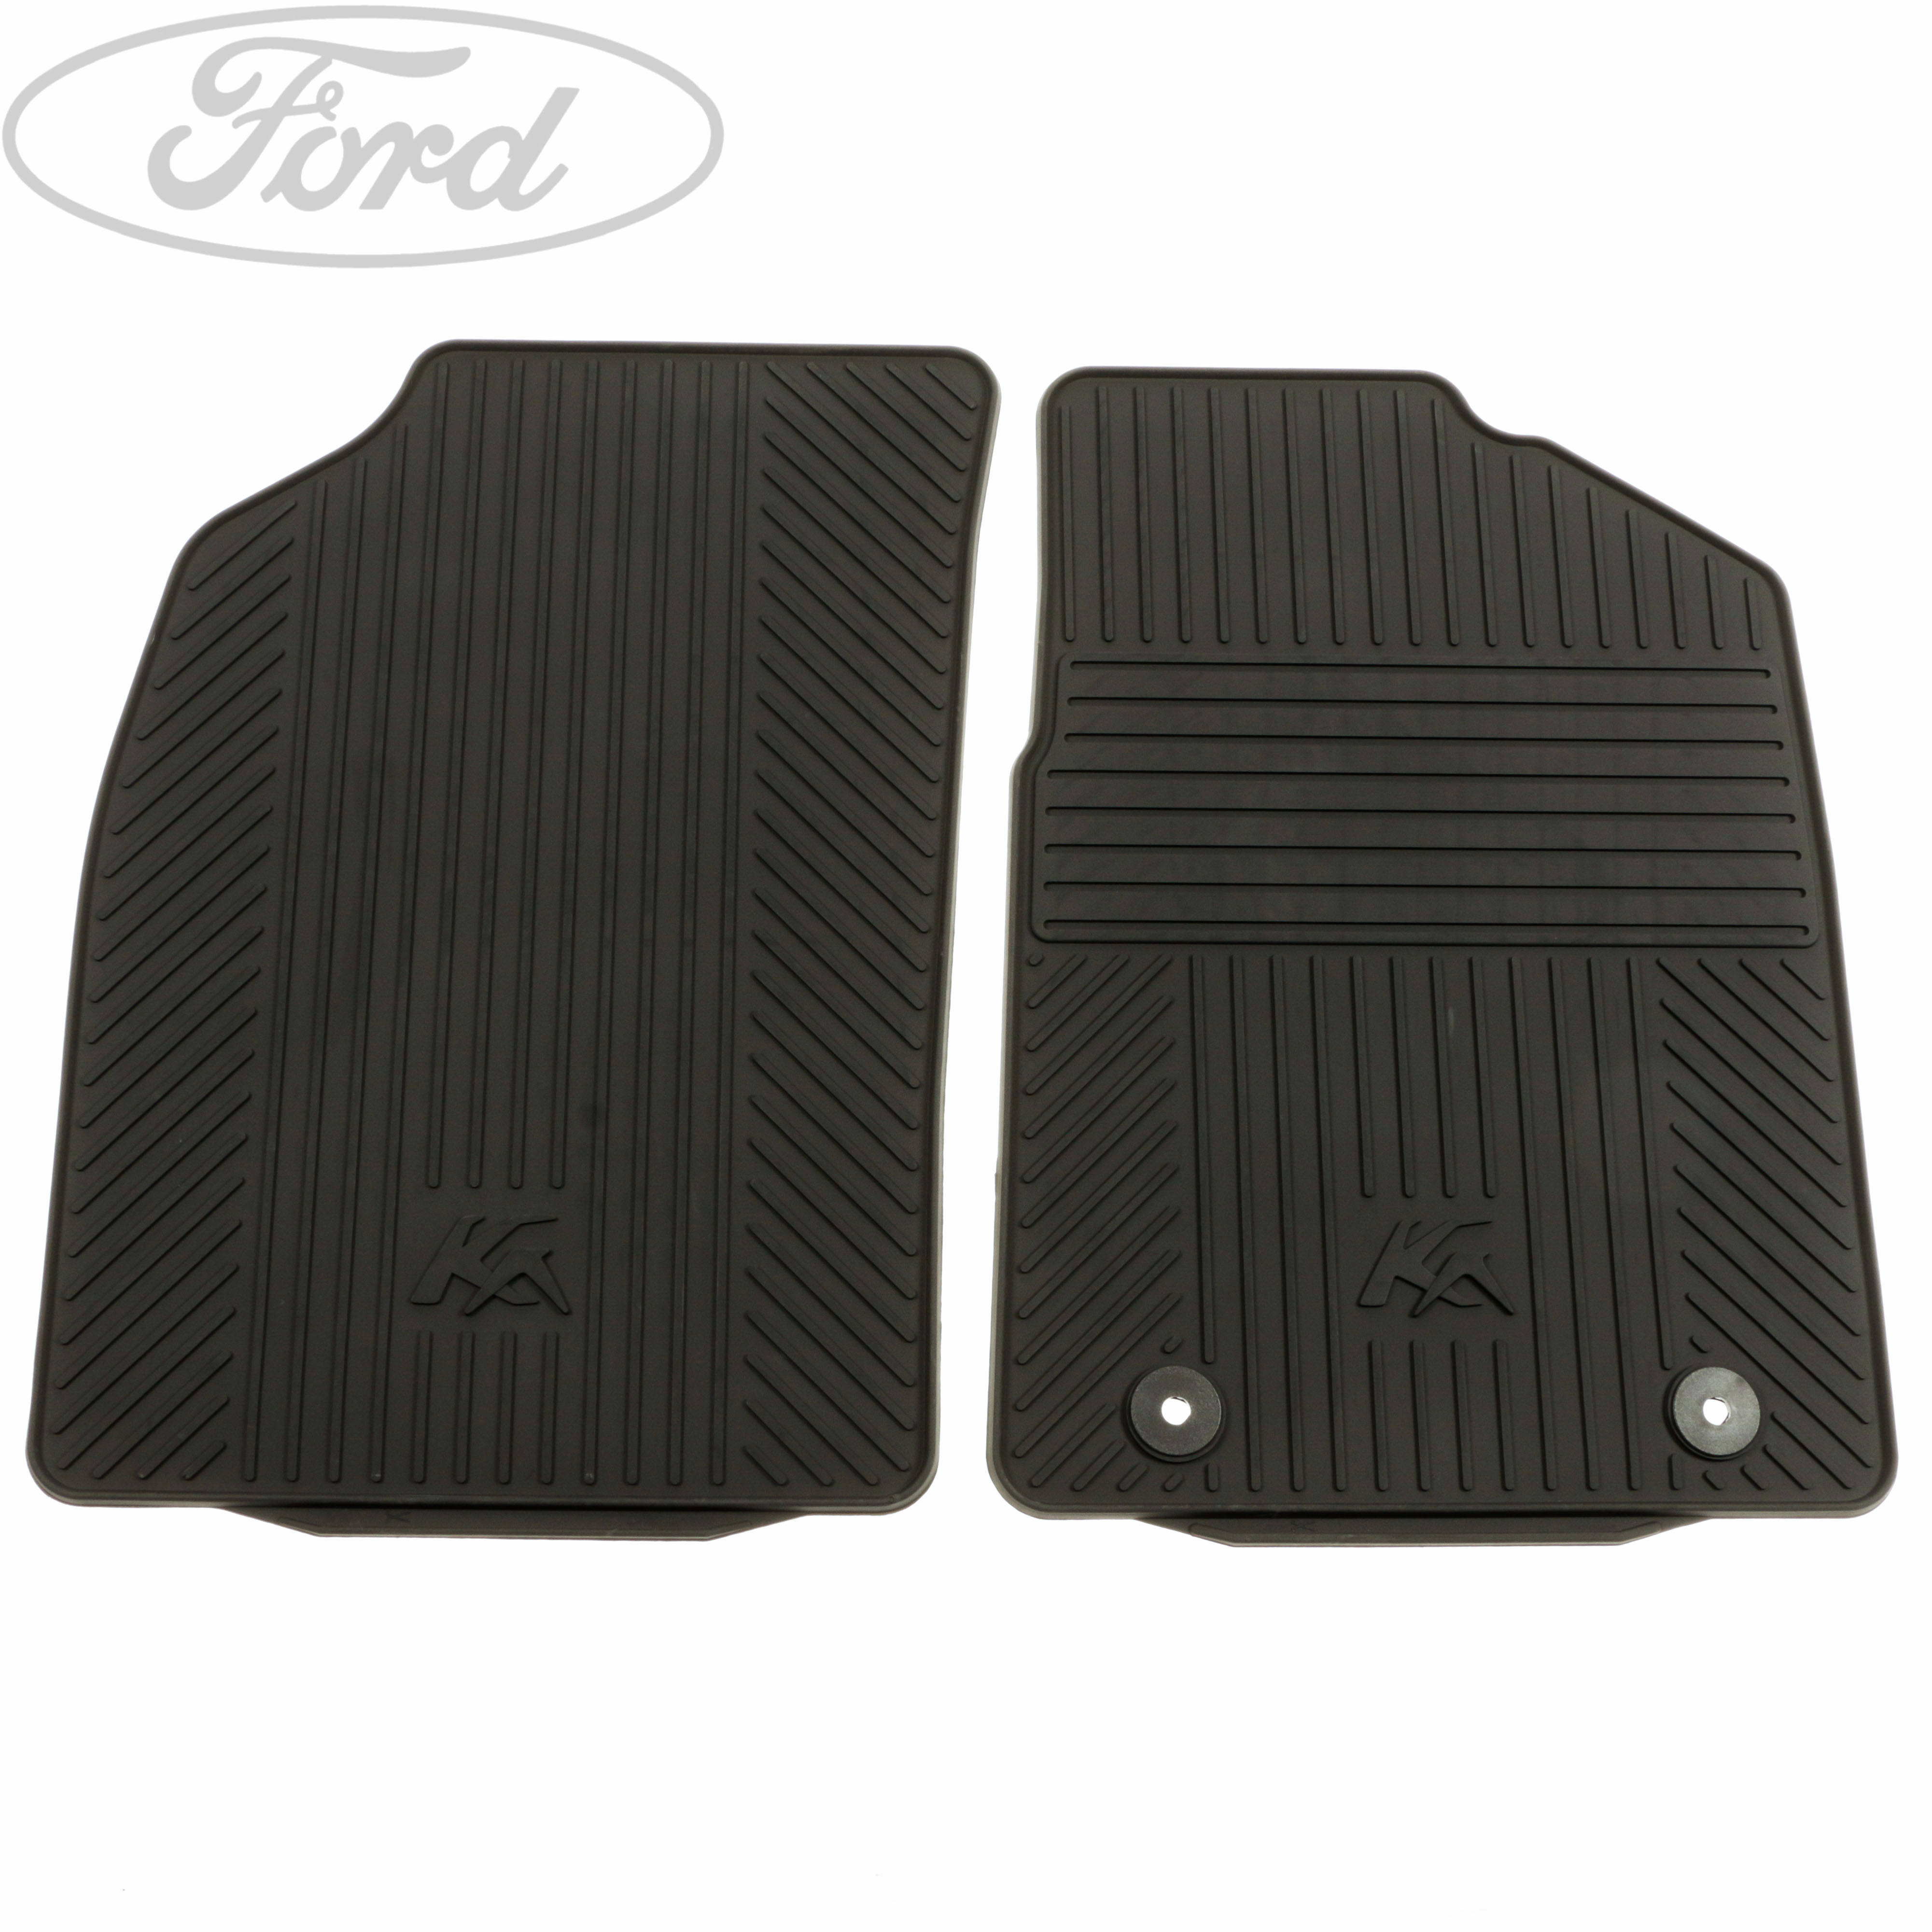 Genuine Ford Ka Front Contour Floor Mat Carpet Set Black Rubber 1806156  sc 1 st  Meze Blog & ford ka floor mats u2013 Meze Blog markmcfarlin.com